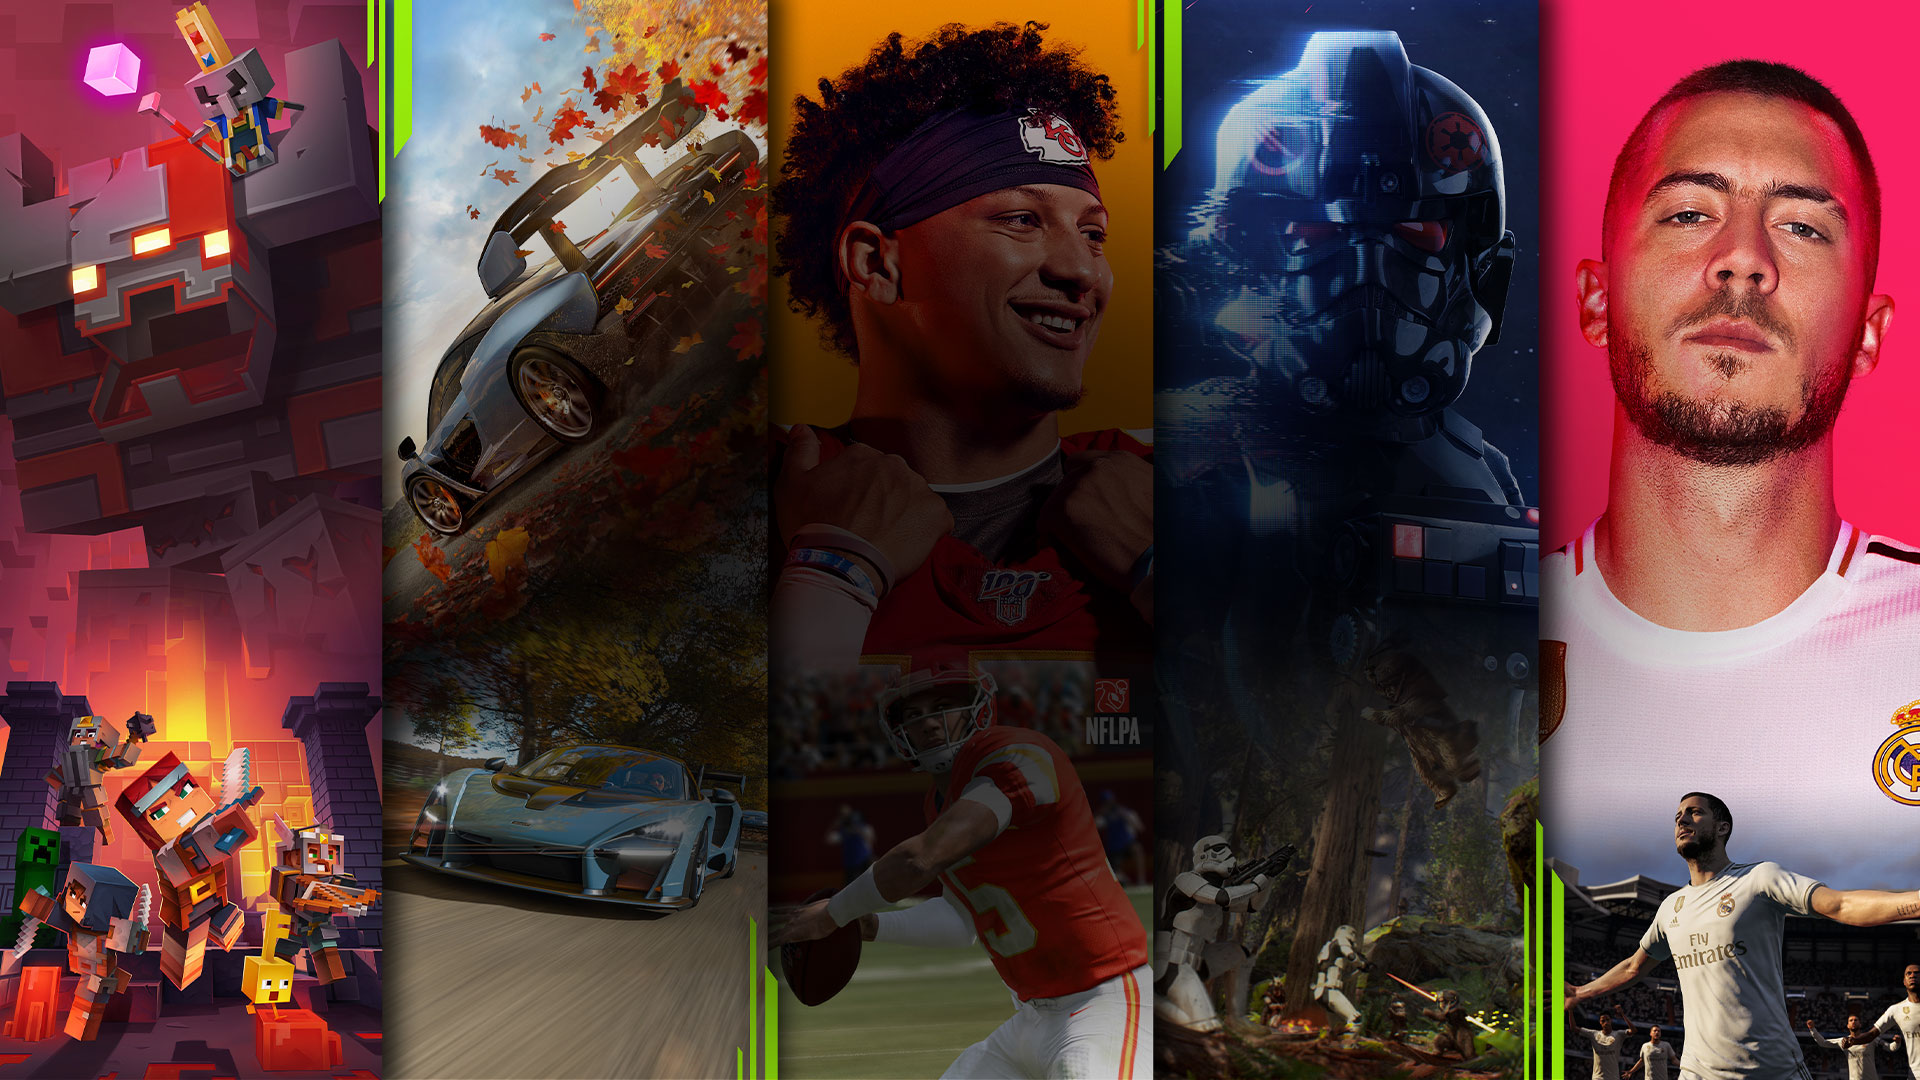 Xbox Game Pass, mosaic of EA play and Xbox Game Pass characters